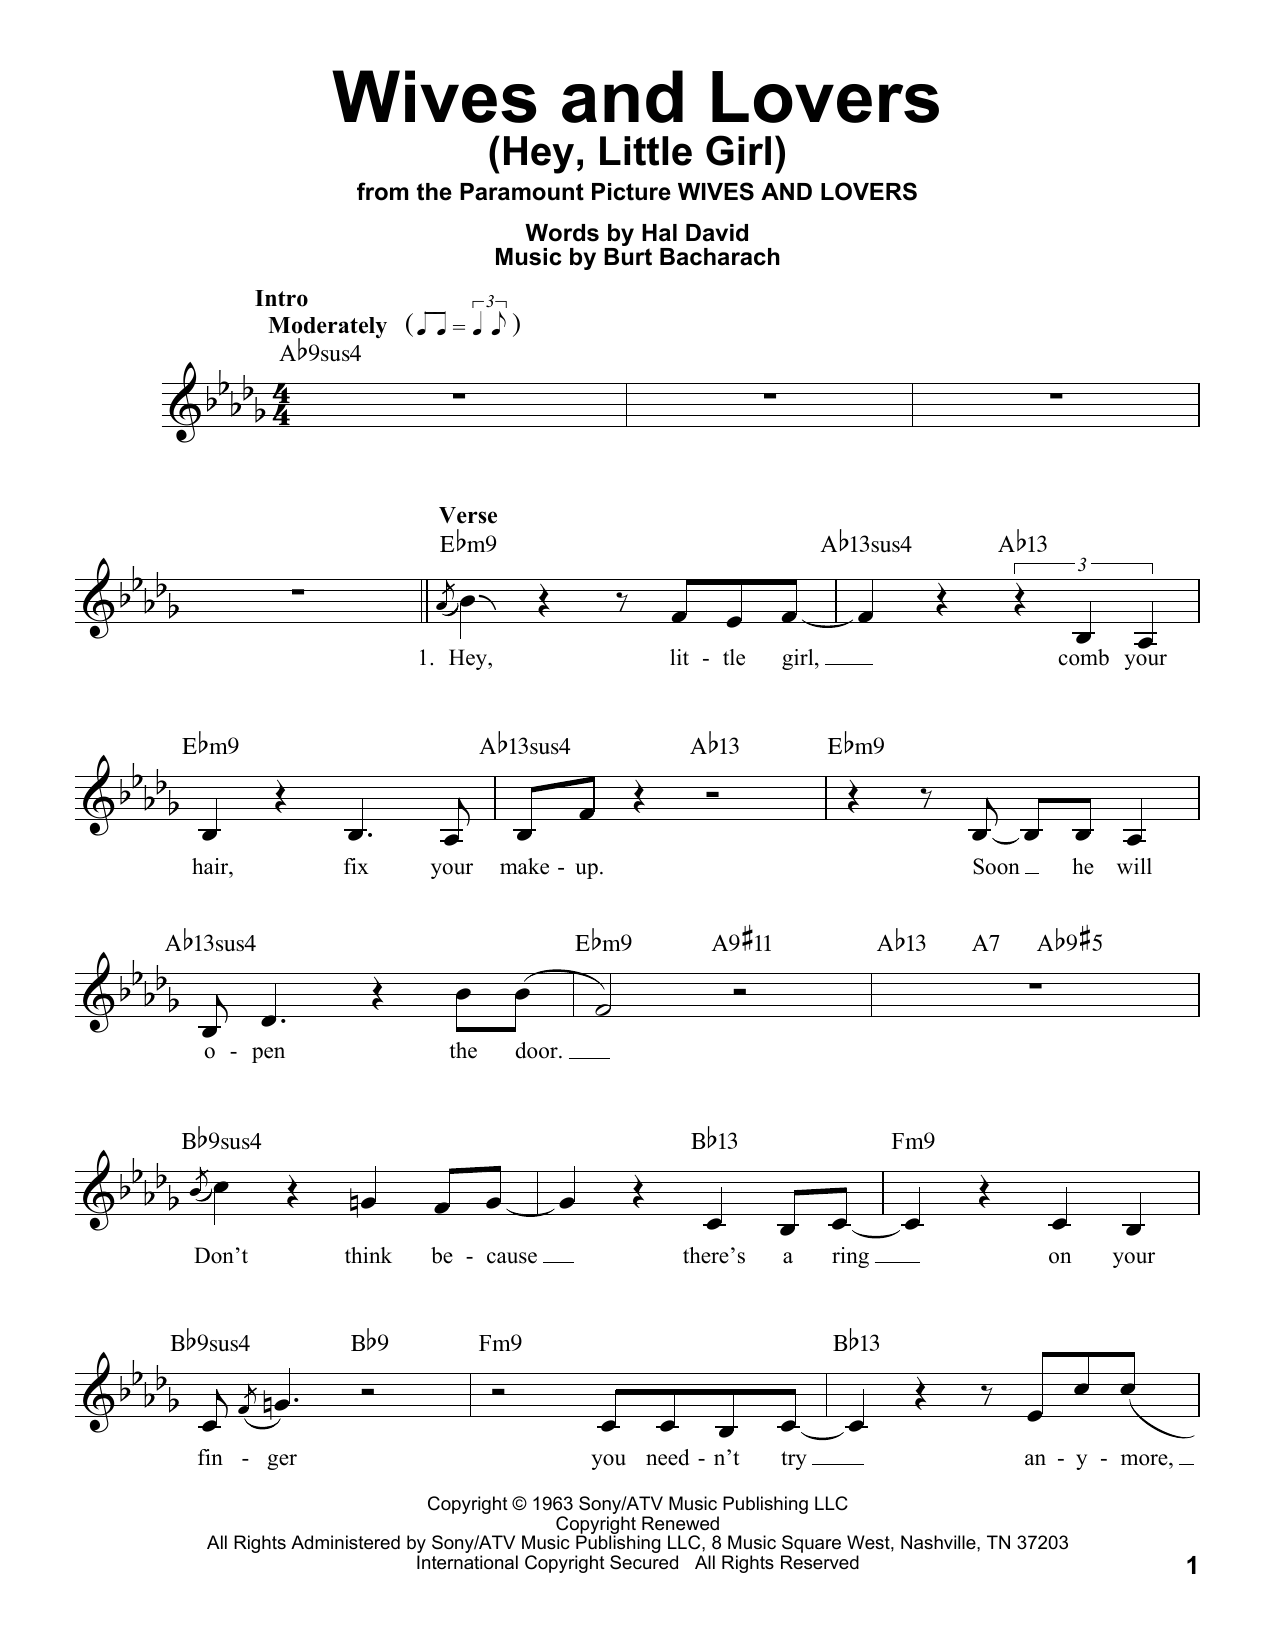 Wives And Lovers (Hey, Little Girl) Sheet Music